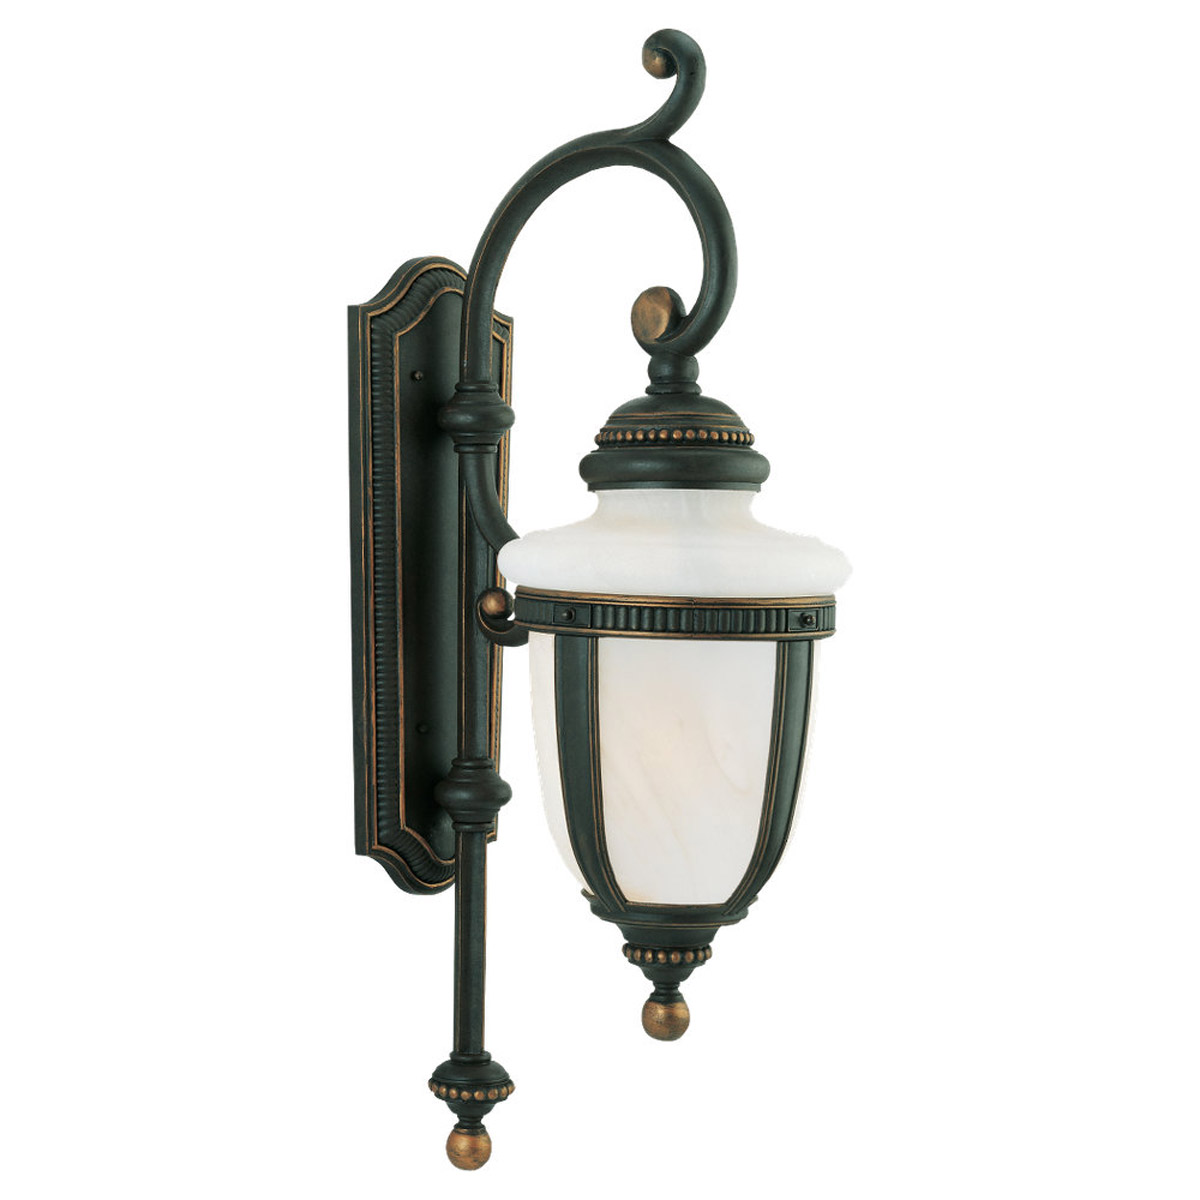 Sea Gull Lighting Portofino 2 Light Outdoor Wall Lantern in Mojave Luster 88057-764